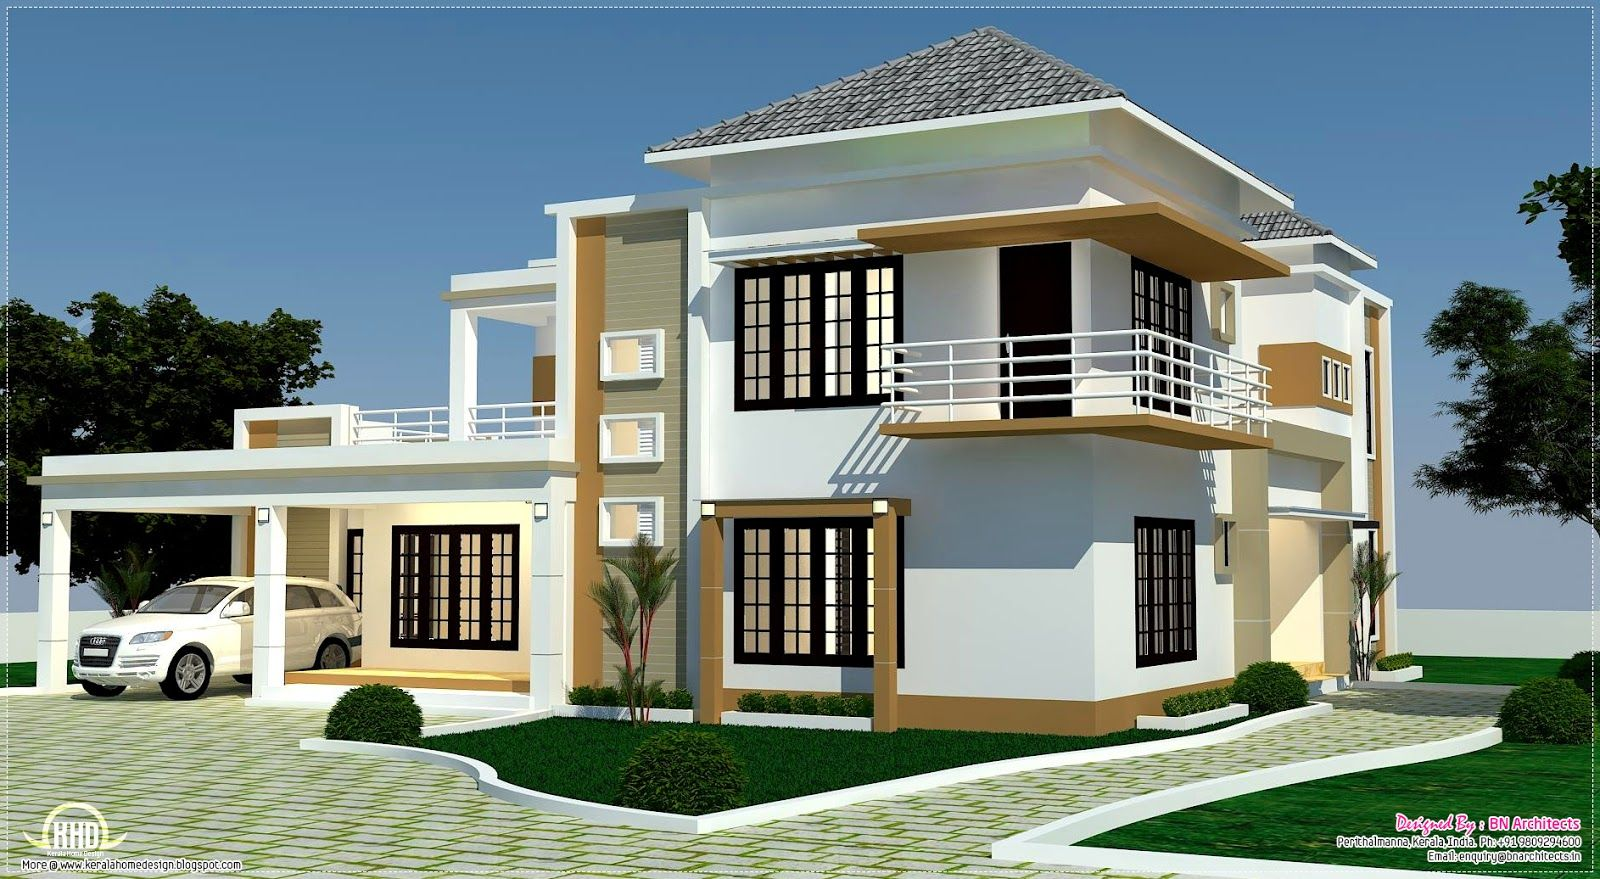 Home plans one room school floor plan 3d views and for 4 bedroom 3d house plans